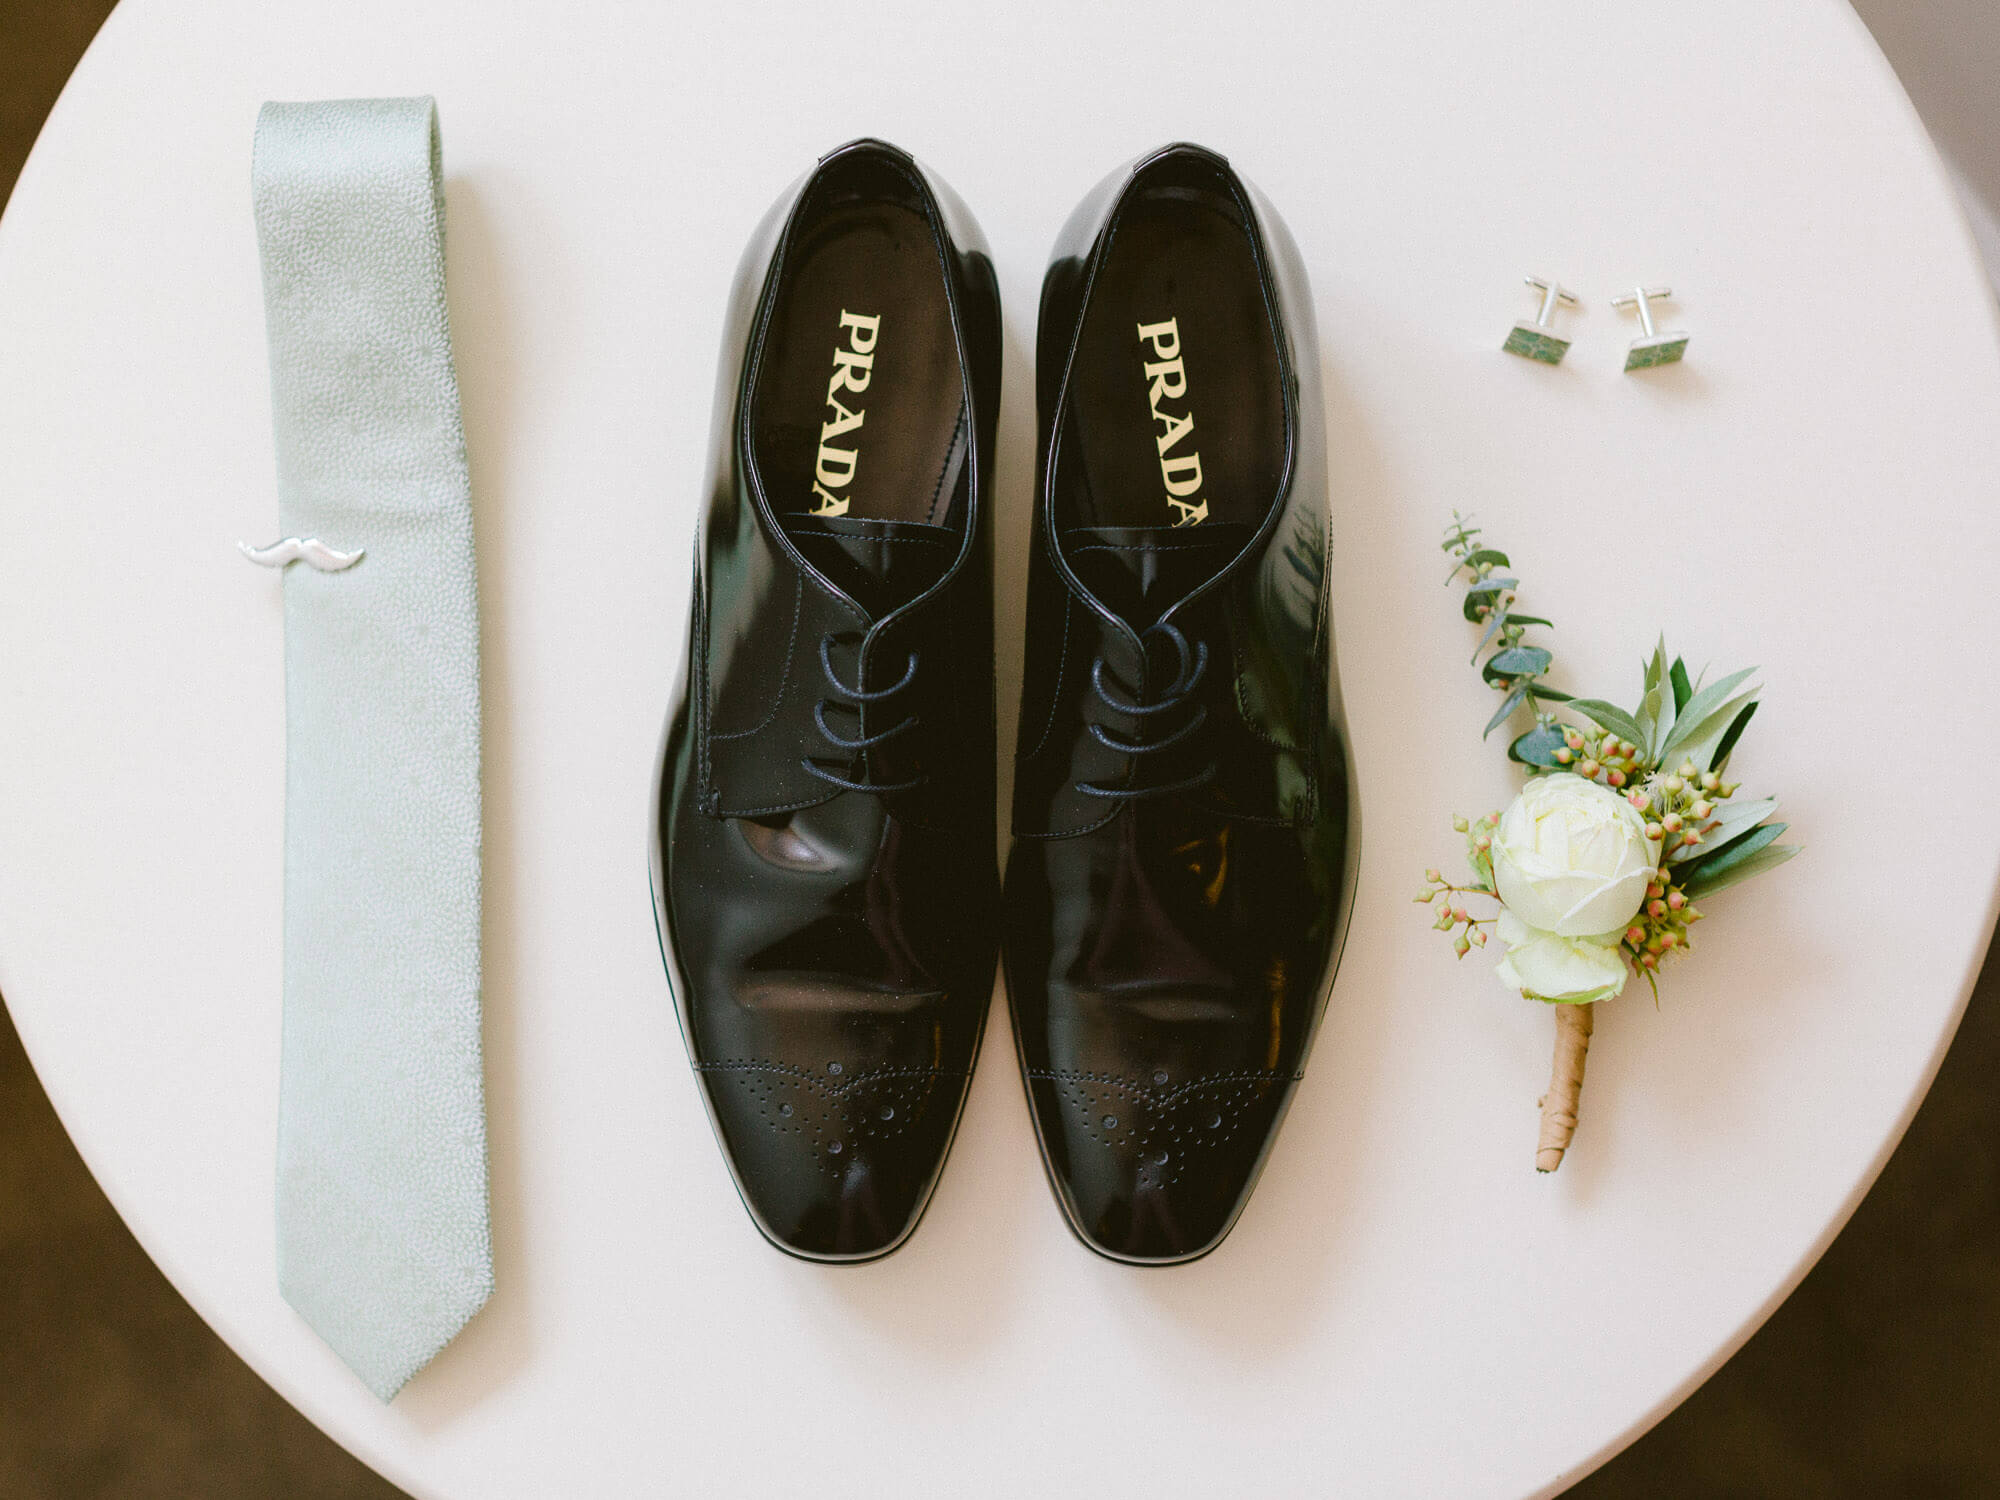 groom's tie, Prada shoes, boutonnière and cufflinks by Portugal Wedding Photographer